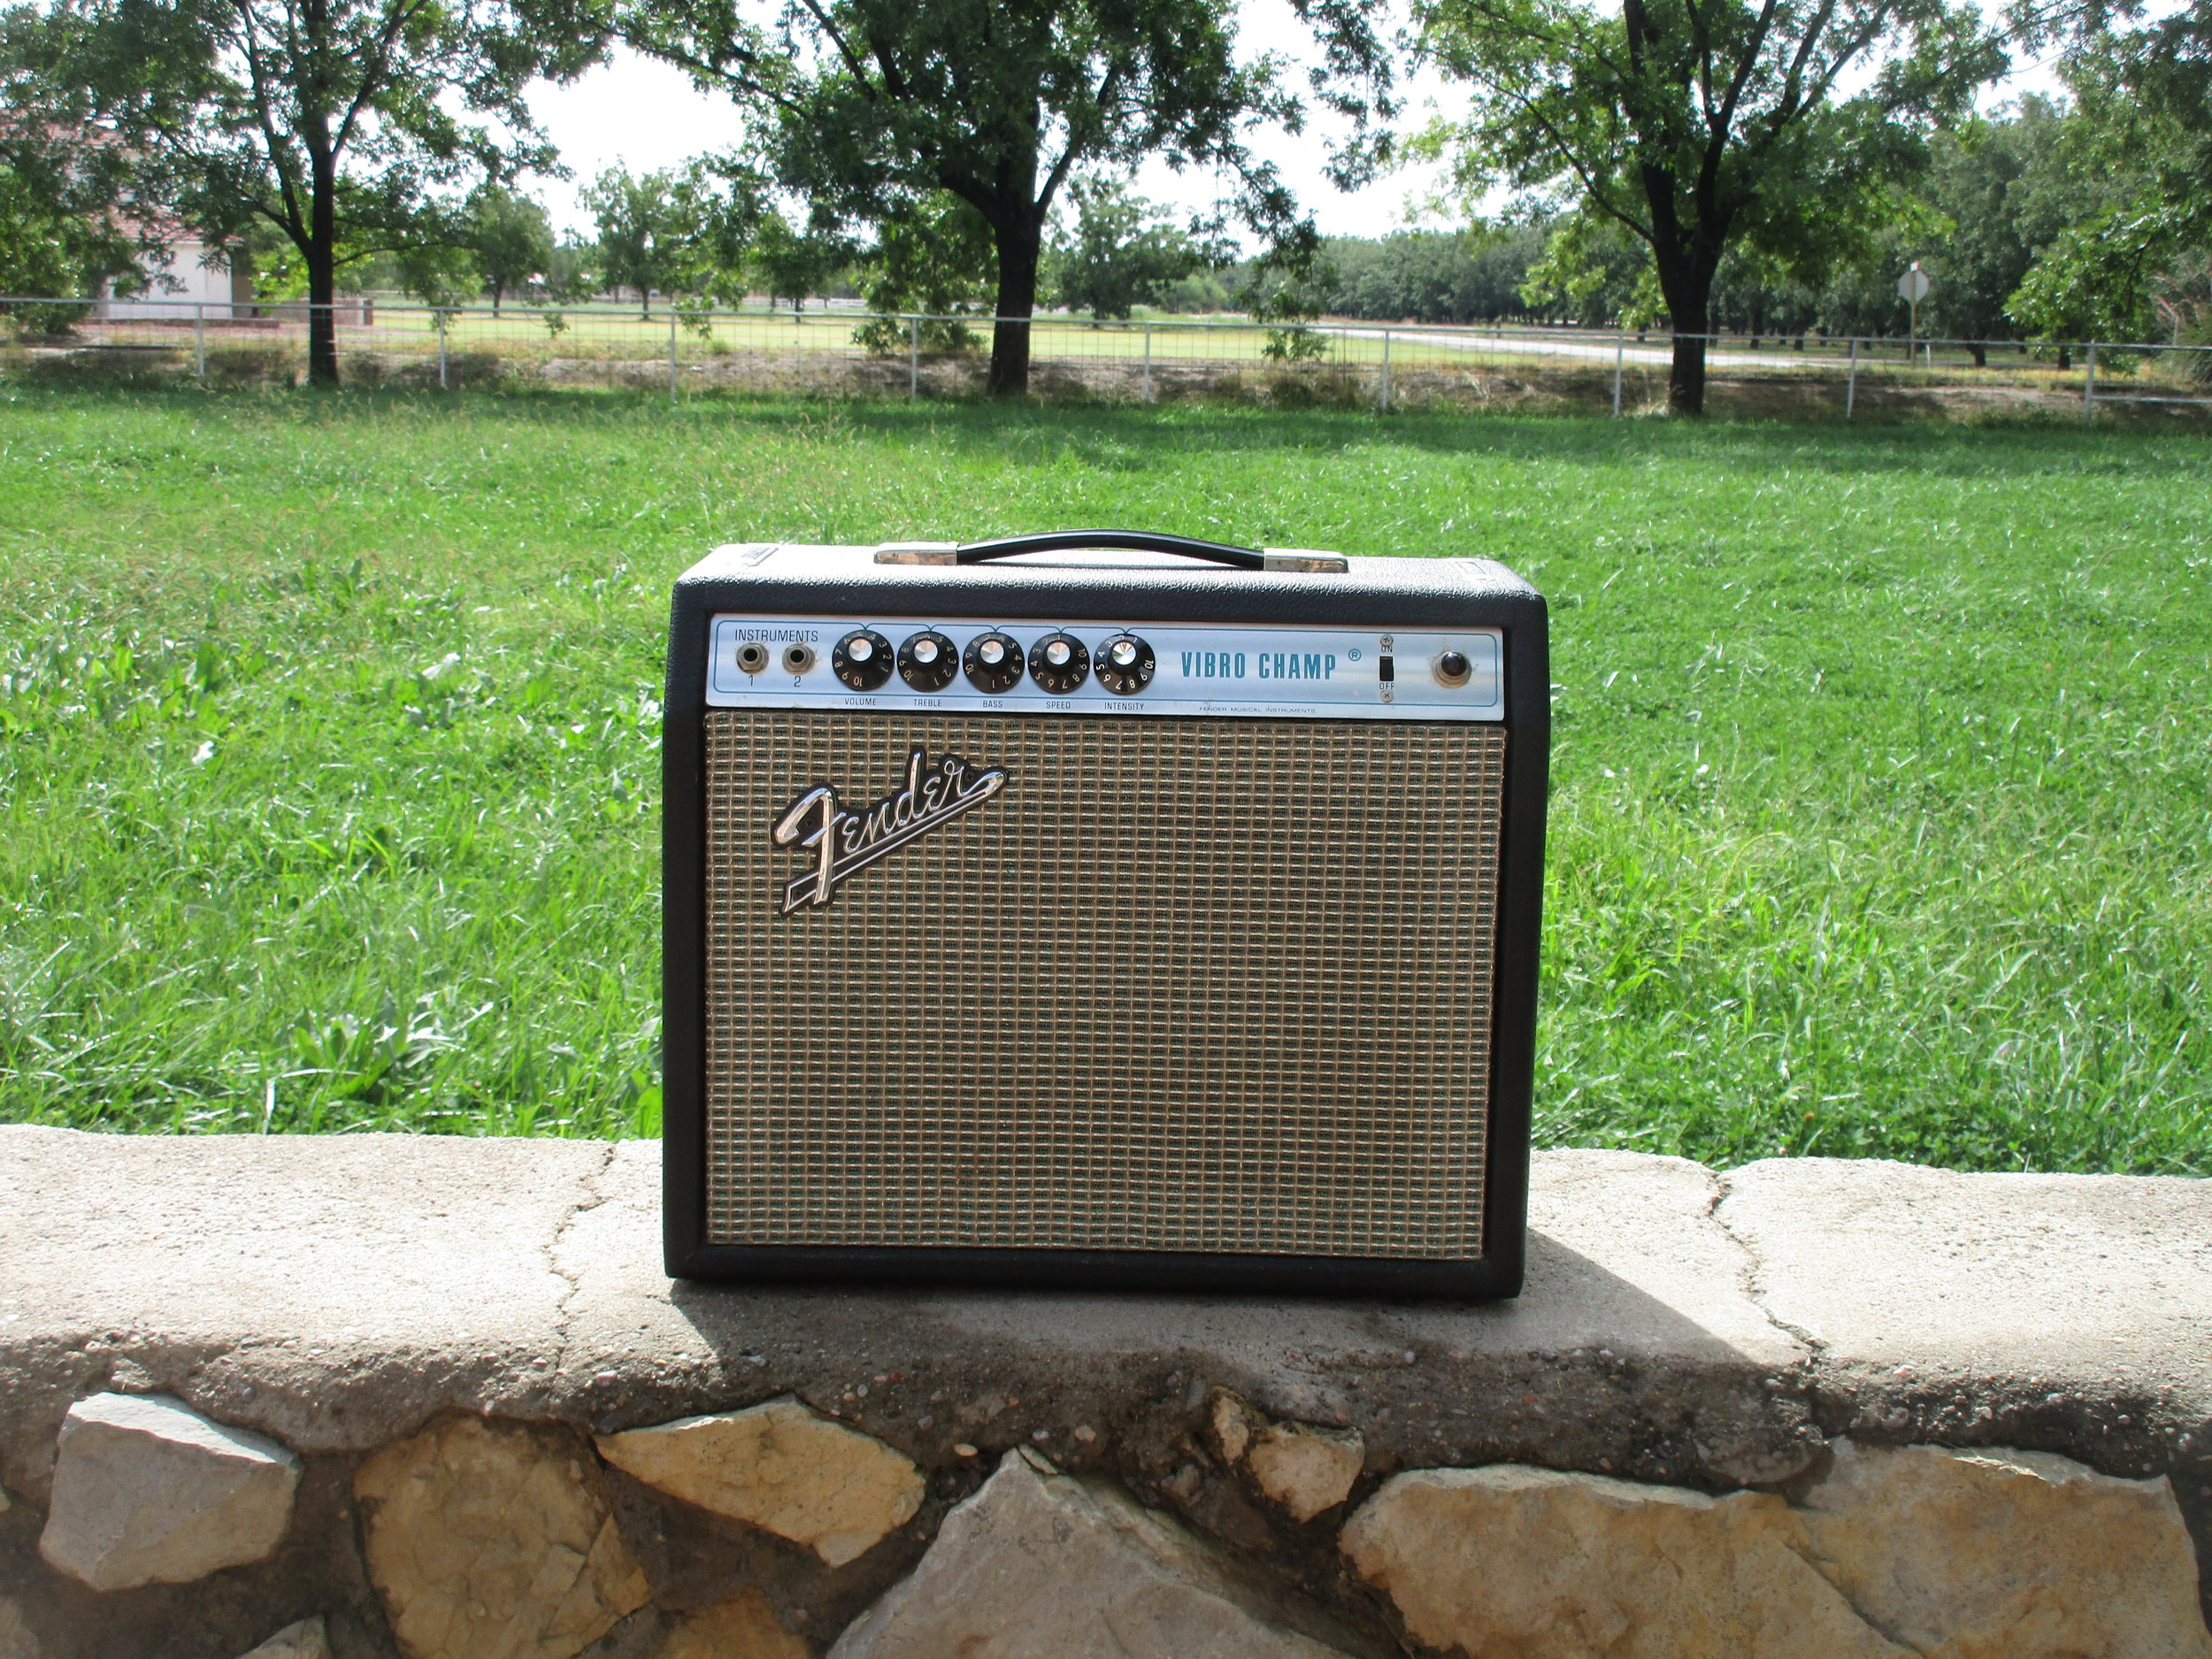 This Silverface Vibro-Champ came in and I did a bunch of little tweaks, replaced the speaker and added a load box for a line out. It sounds great now!